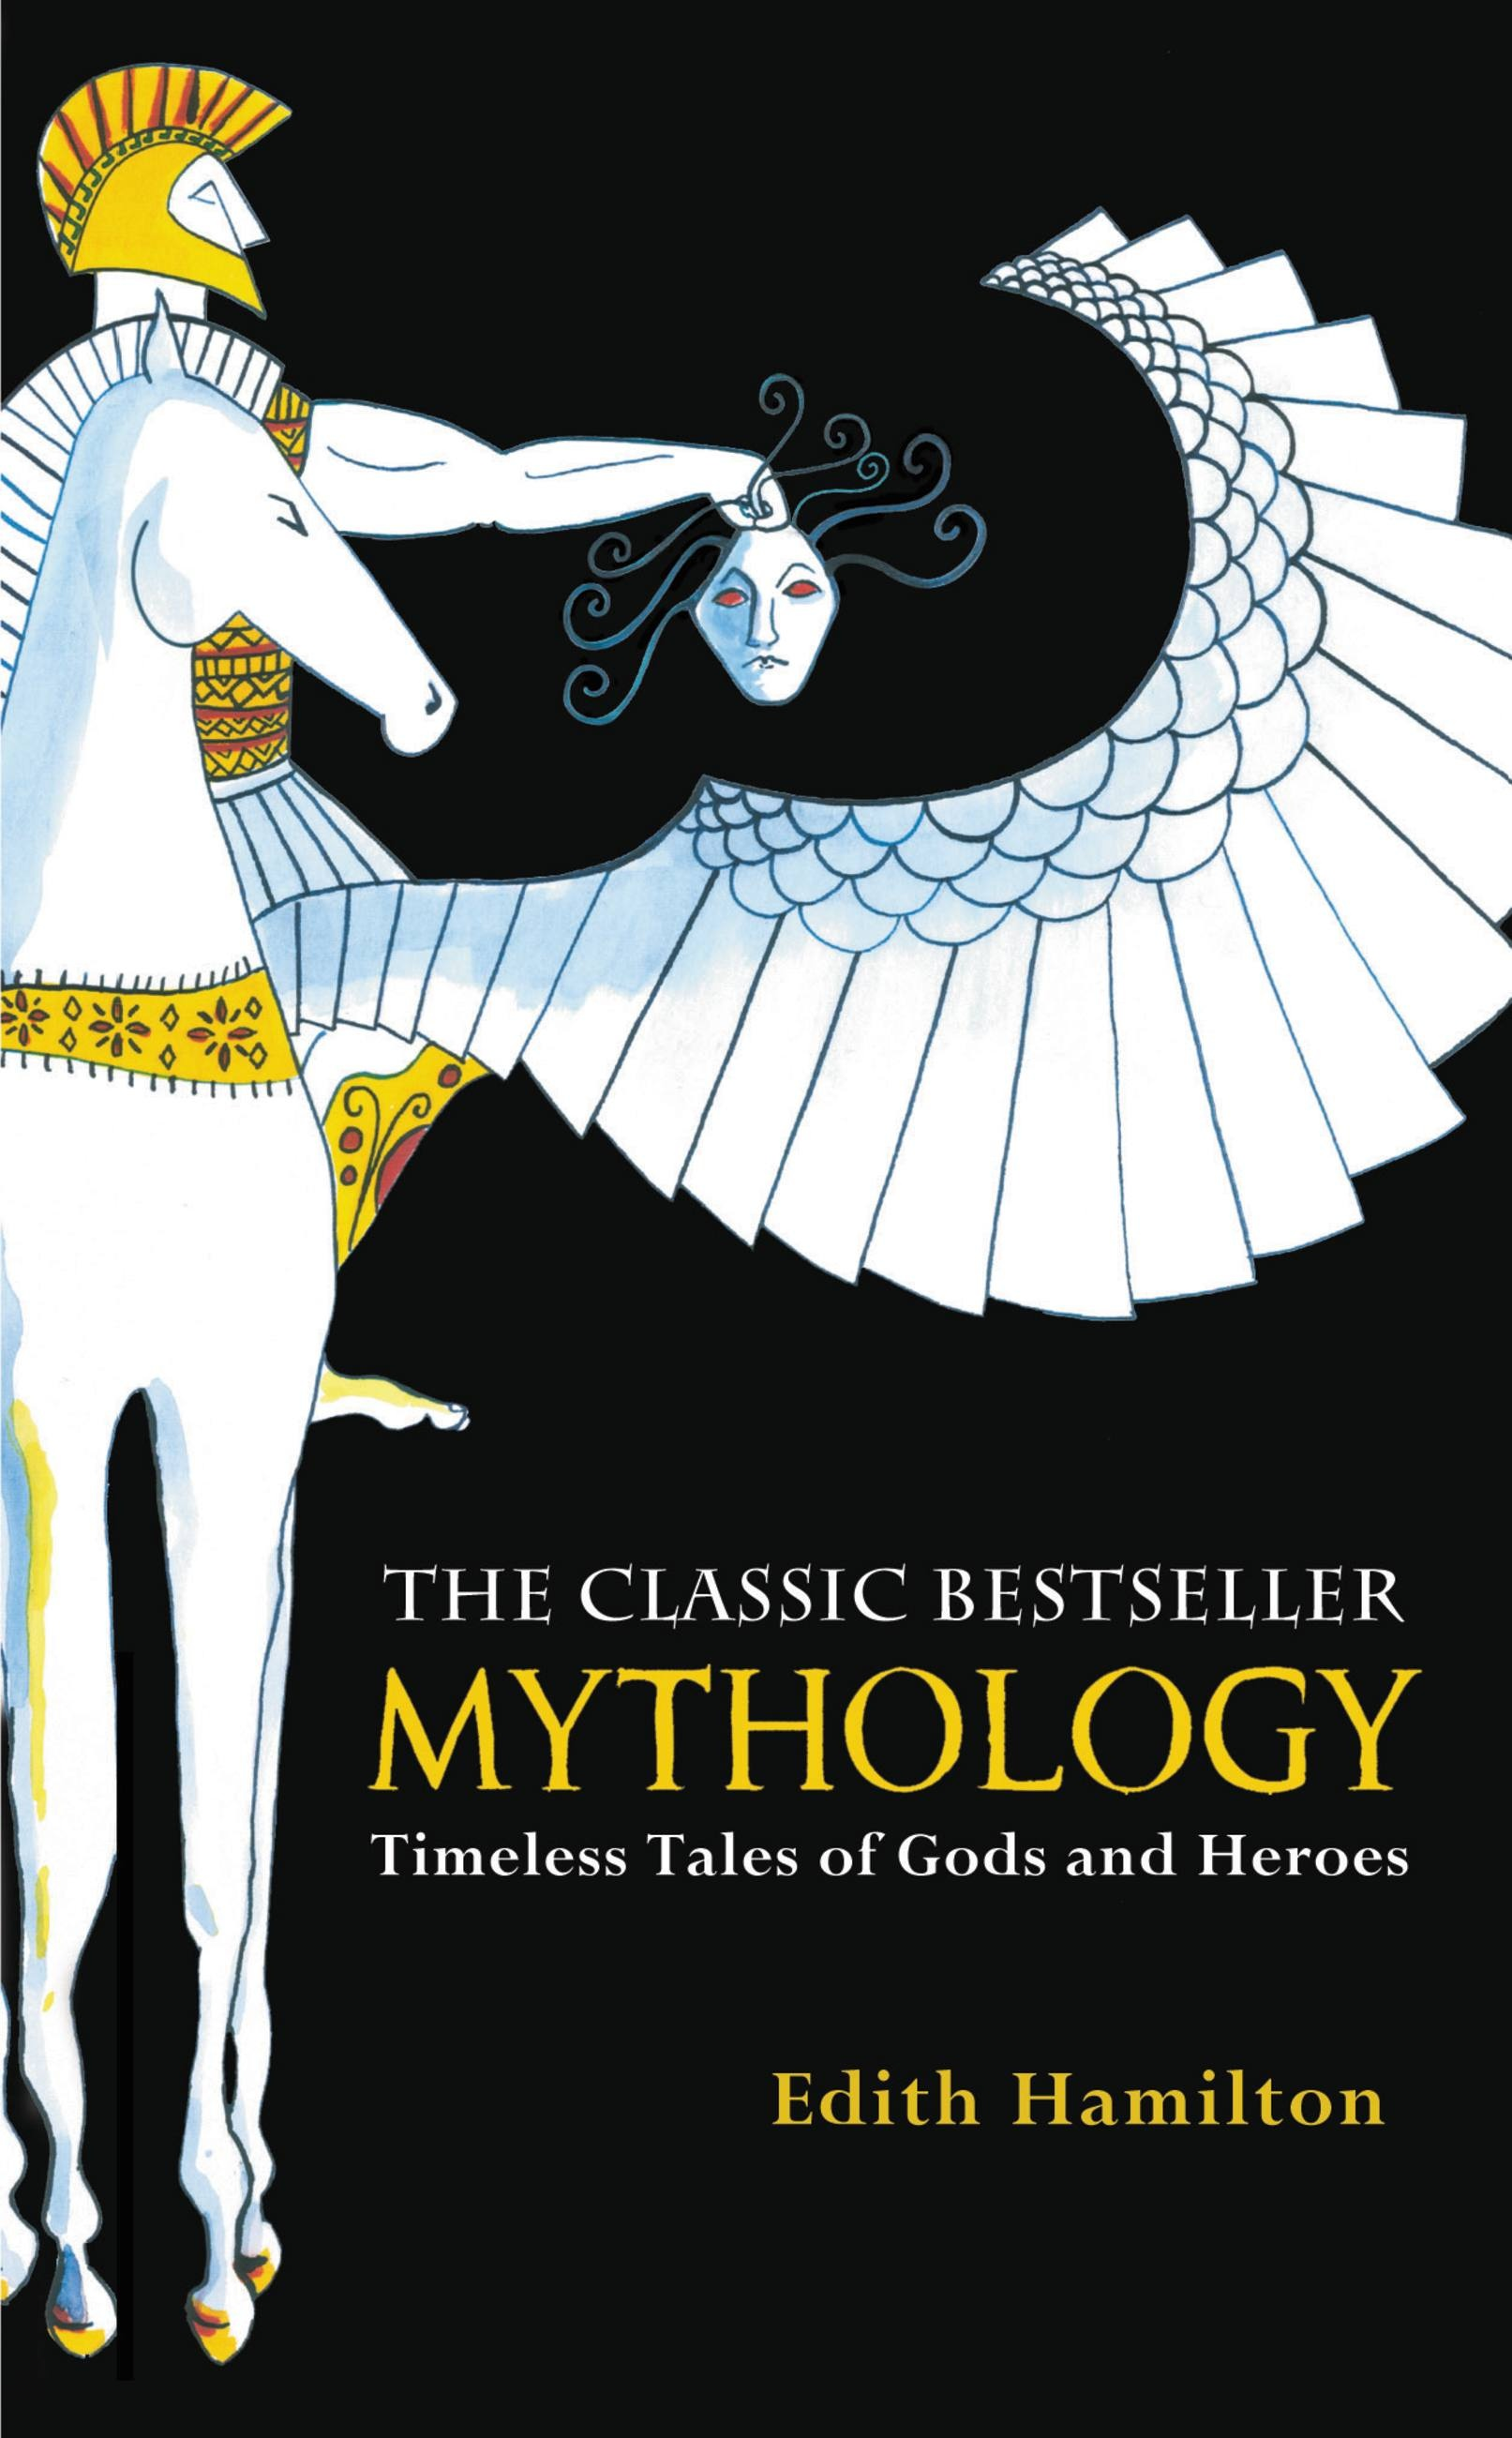 a literary analysis of the mythology of the city of god A literary analysis of the mythology of the  a literary analysis of the mythology of the breath of god his a literary analysis of the mythology of the breath of.